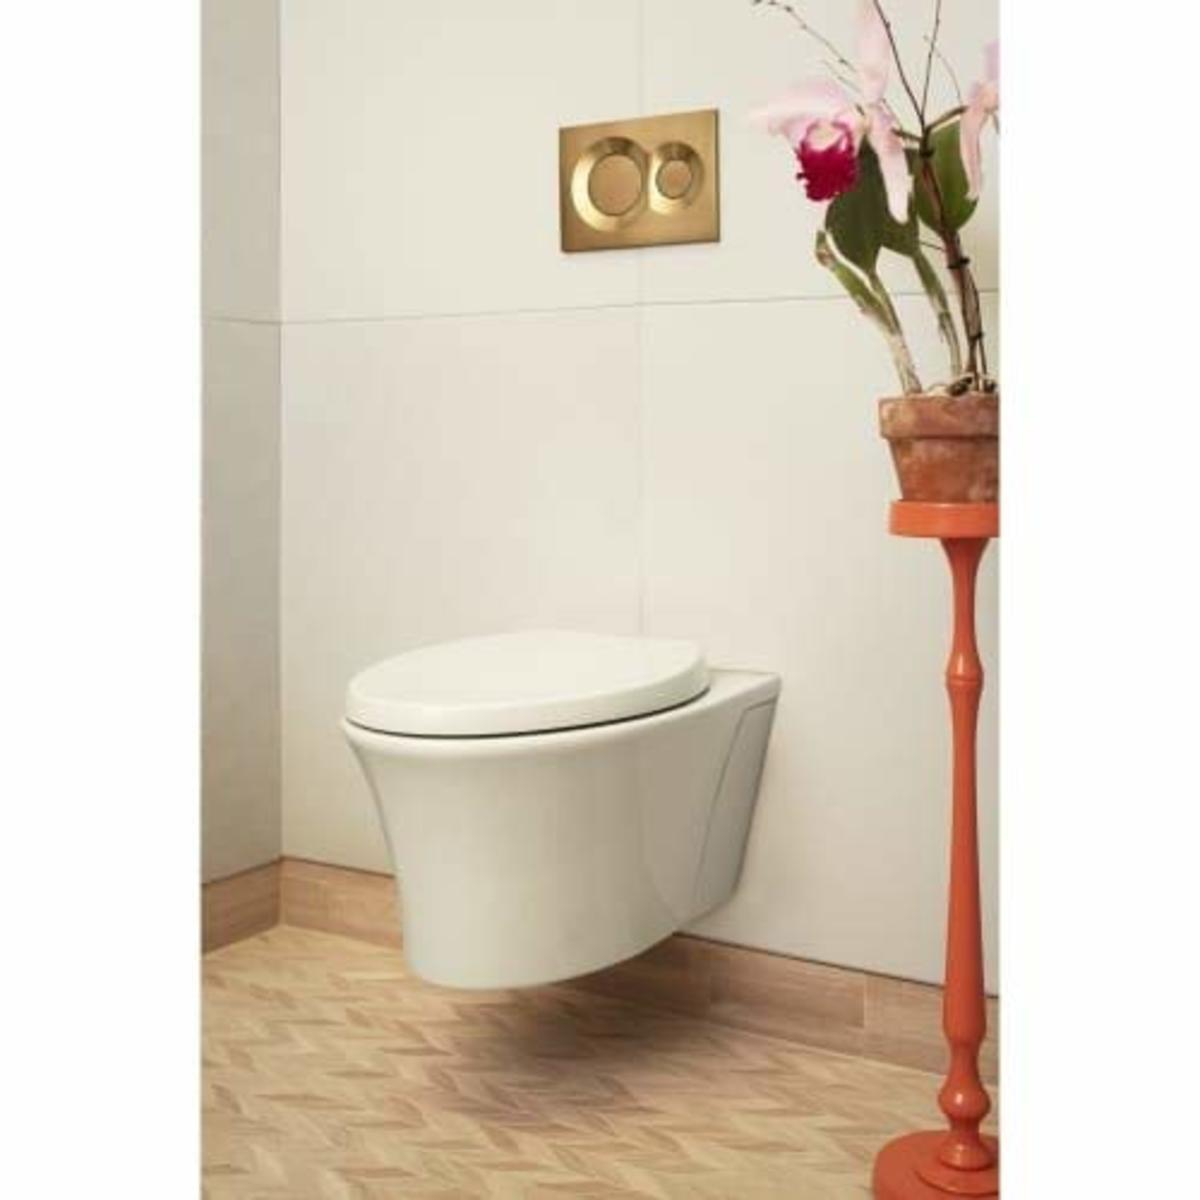 How to Install a Wall-Mounted Toilet: A Step-by-Step Tutorial